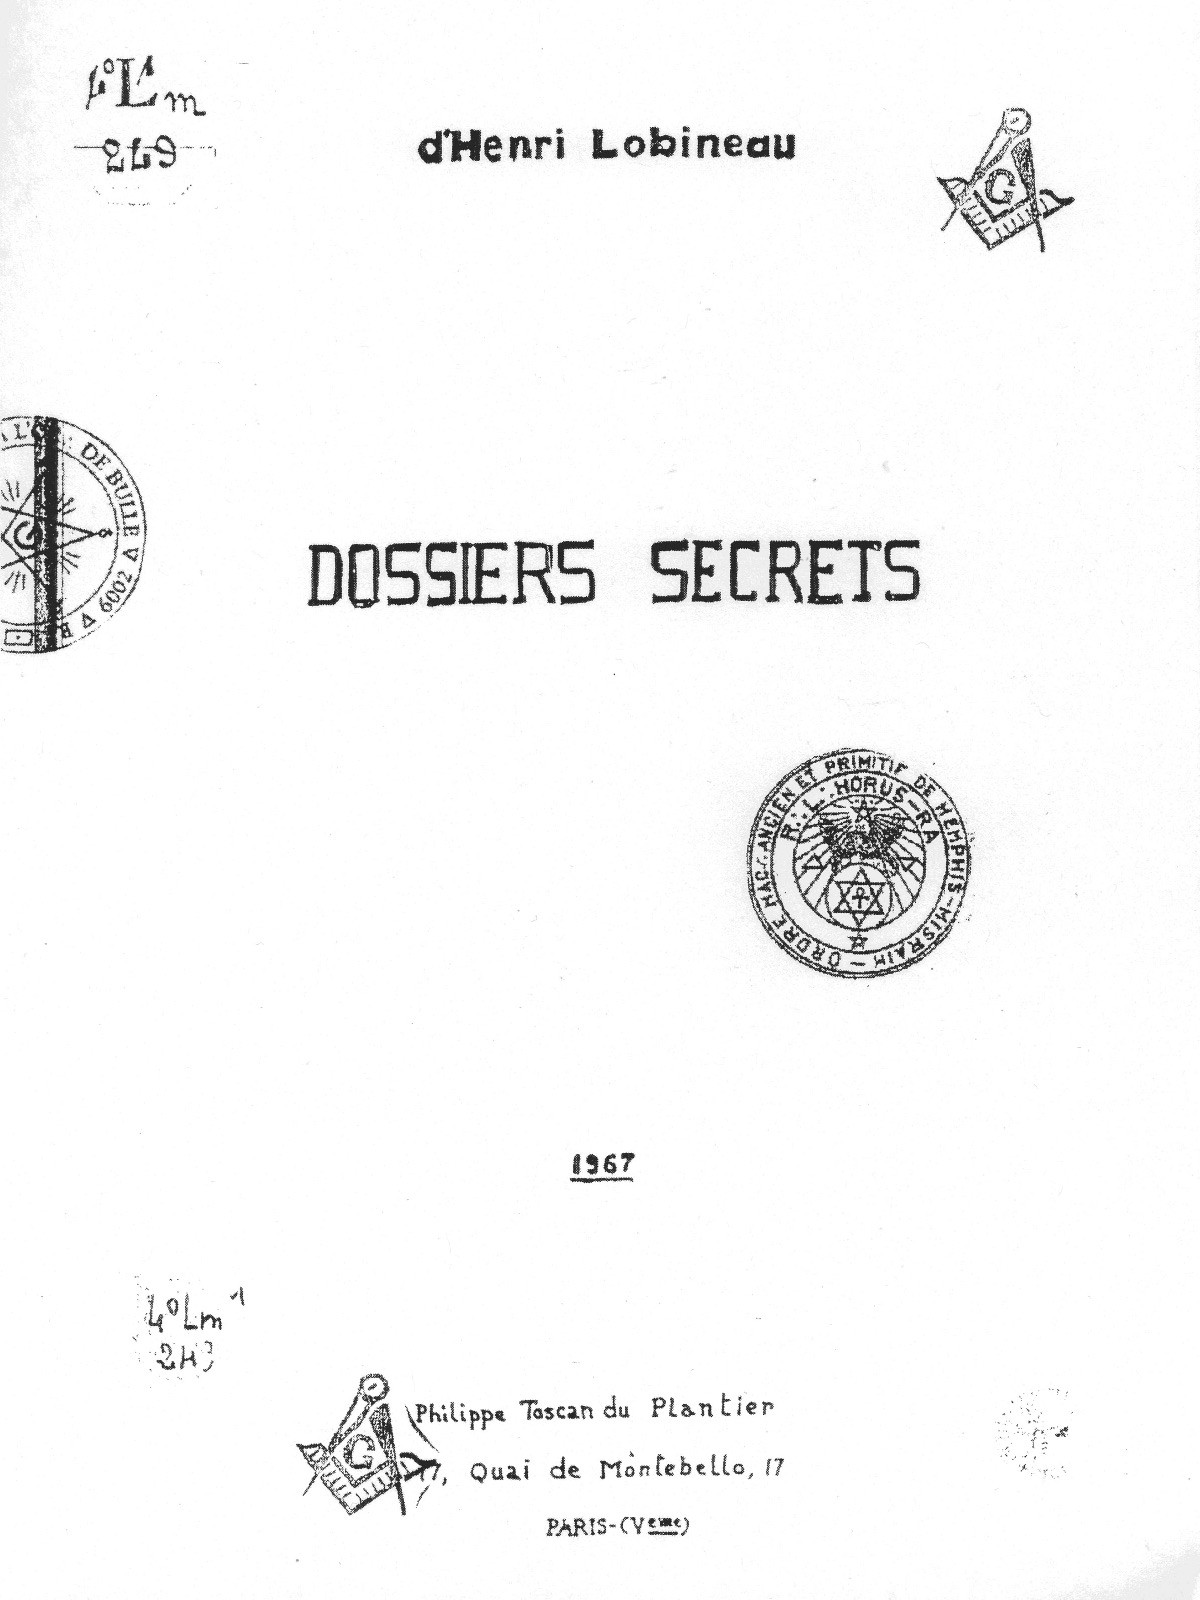 The authors of the Holy Blood and the Holy Grail appeared to be unaware that the Dossiers Secrets was a hoax